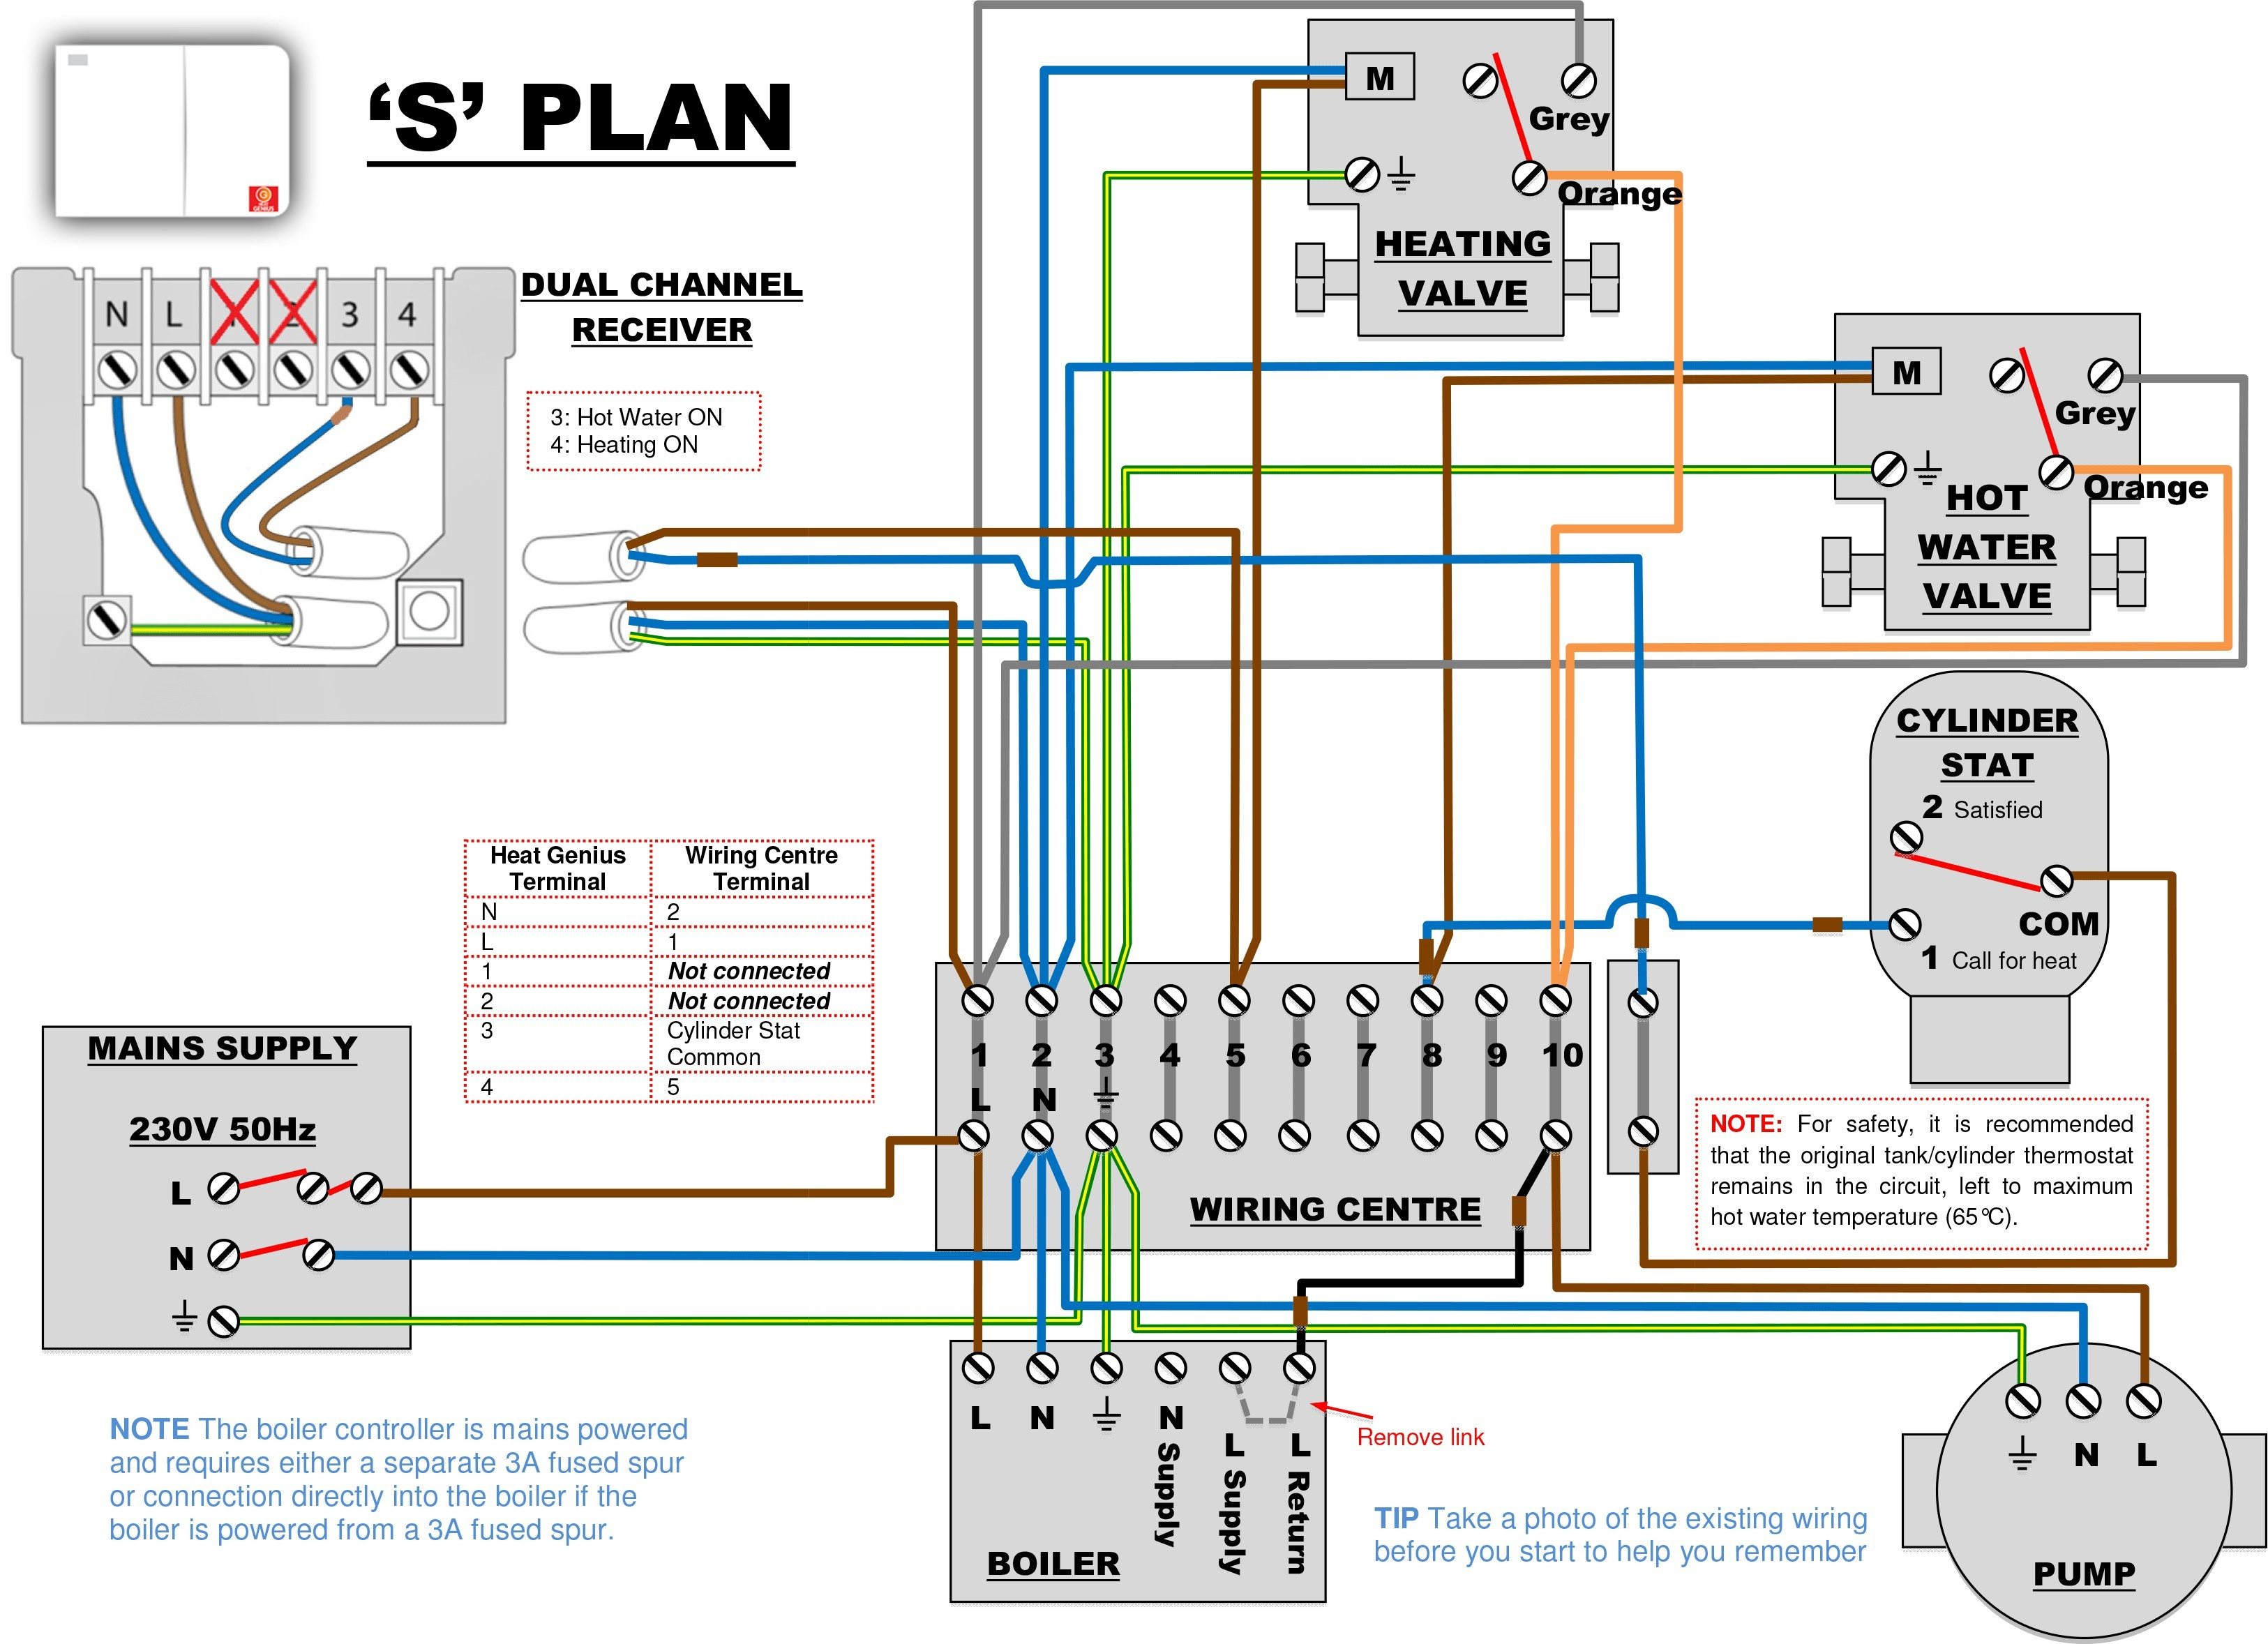 Nest Thermostat Heat Pump Wiring Diagram Heat Pump Thermostat Wiring - Nest 3 Wiring Diagram Heat Pump